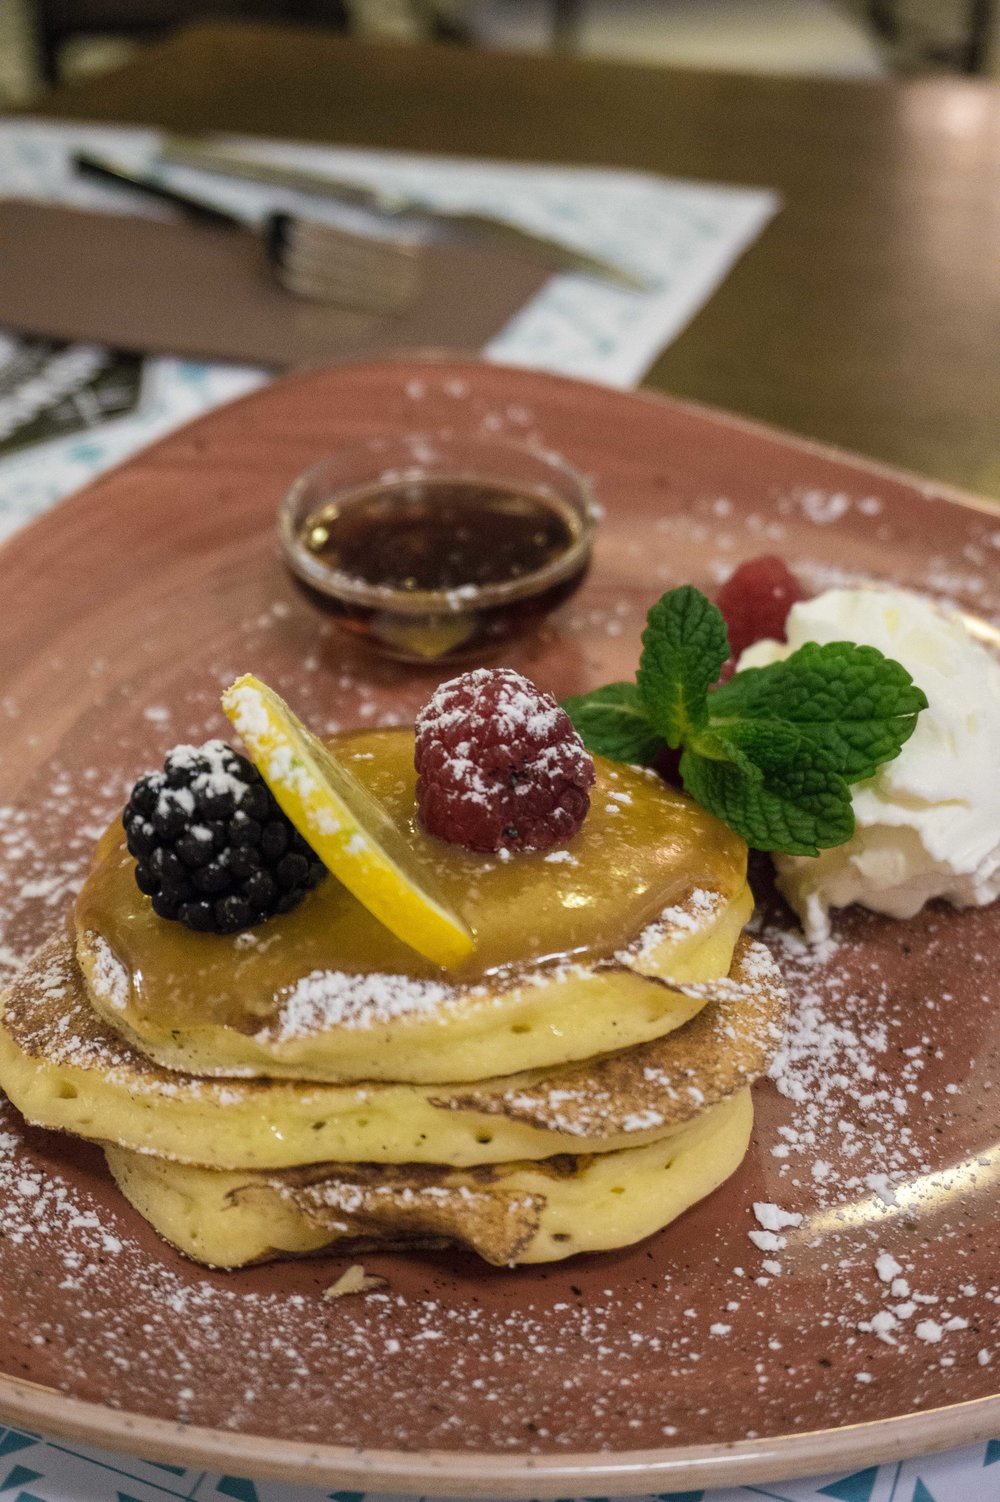 Lemon Ricotta Pancakes at Sirvent Barcelona